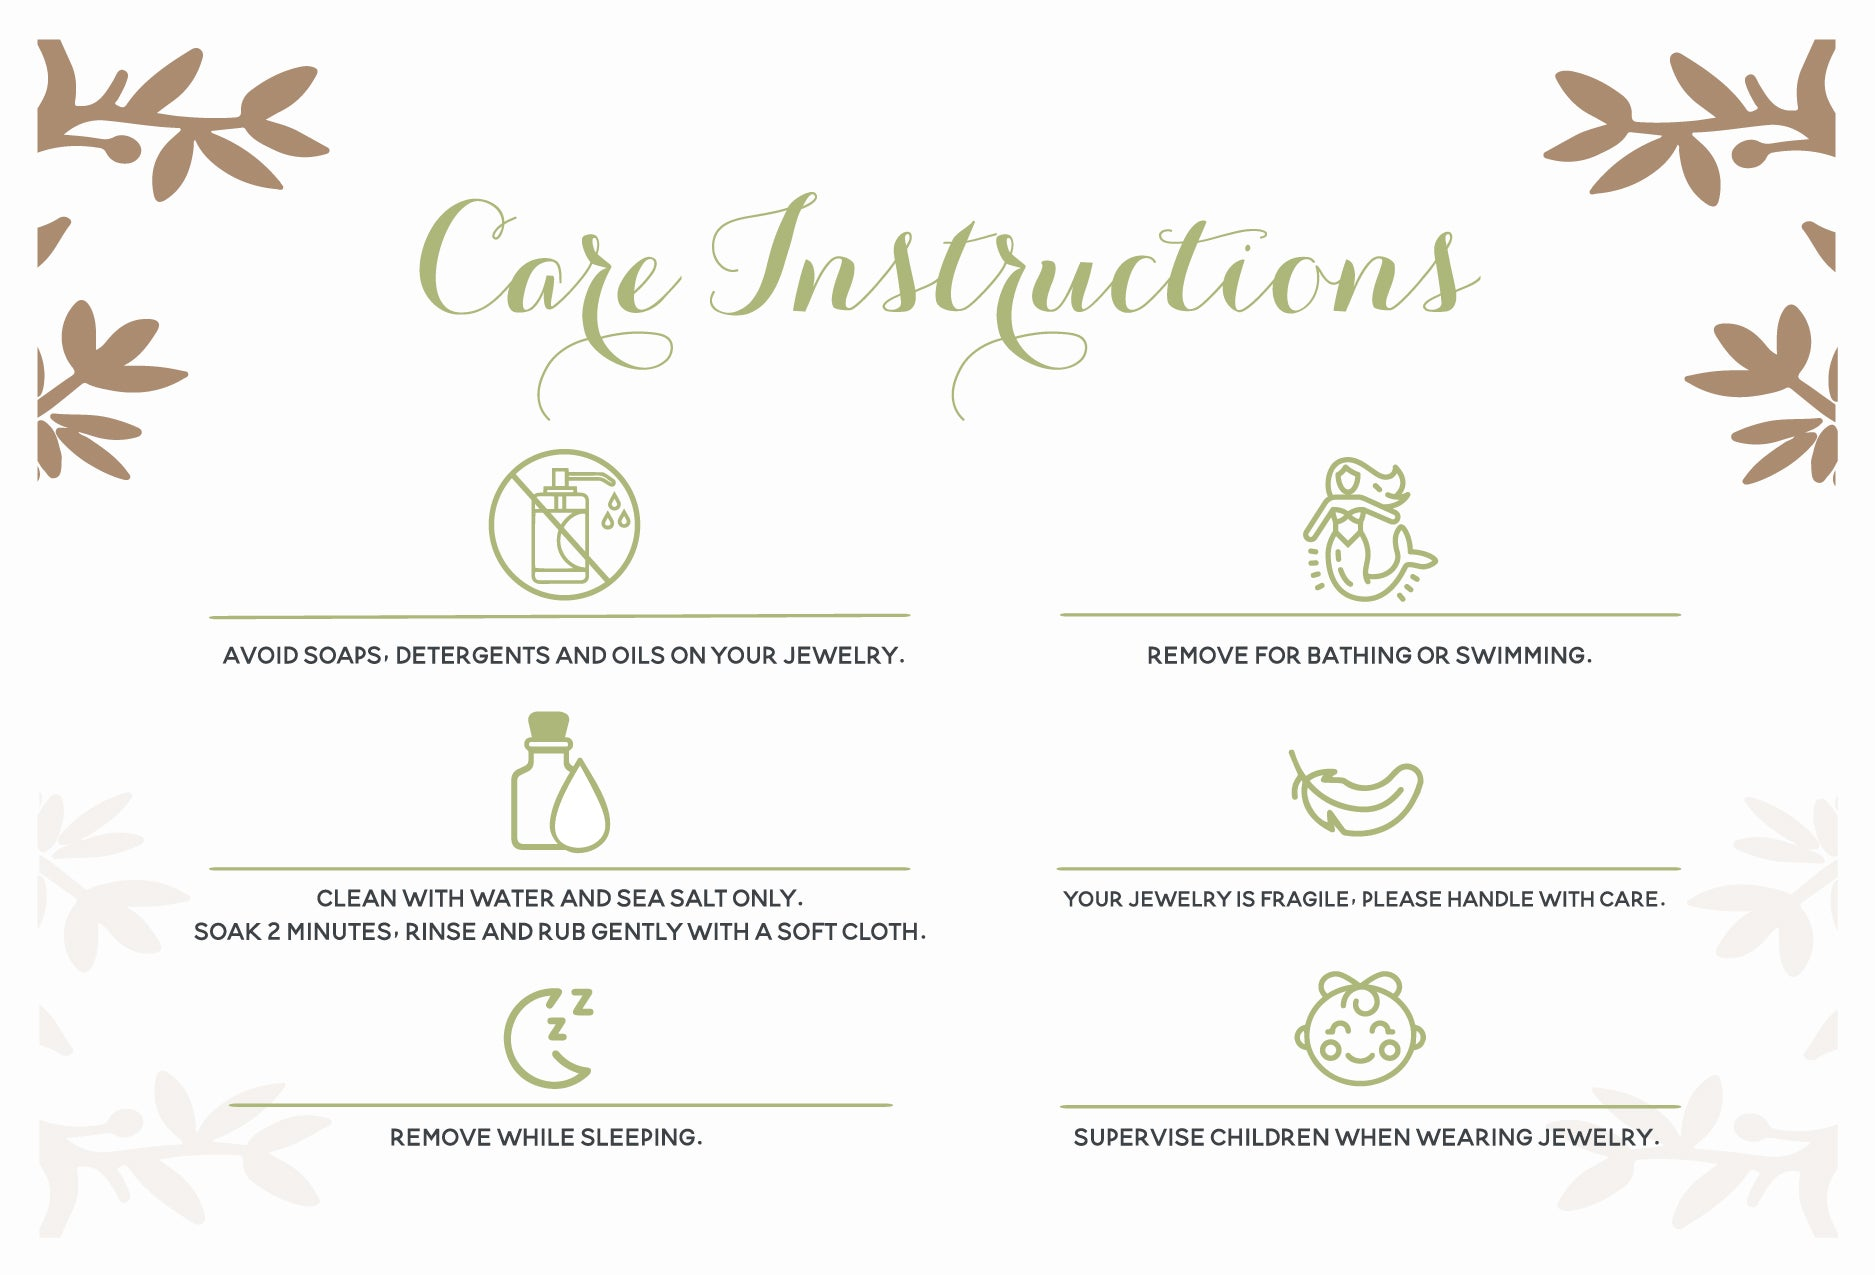 BALTIC AMBER CARE INSTRUCTIONS BY MACRAE NATURALS